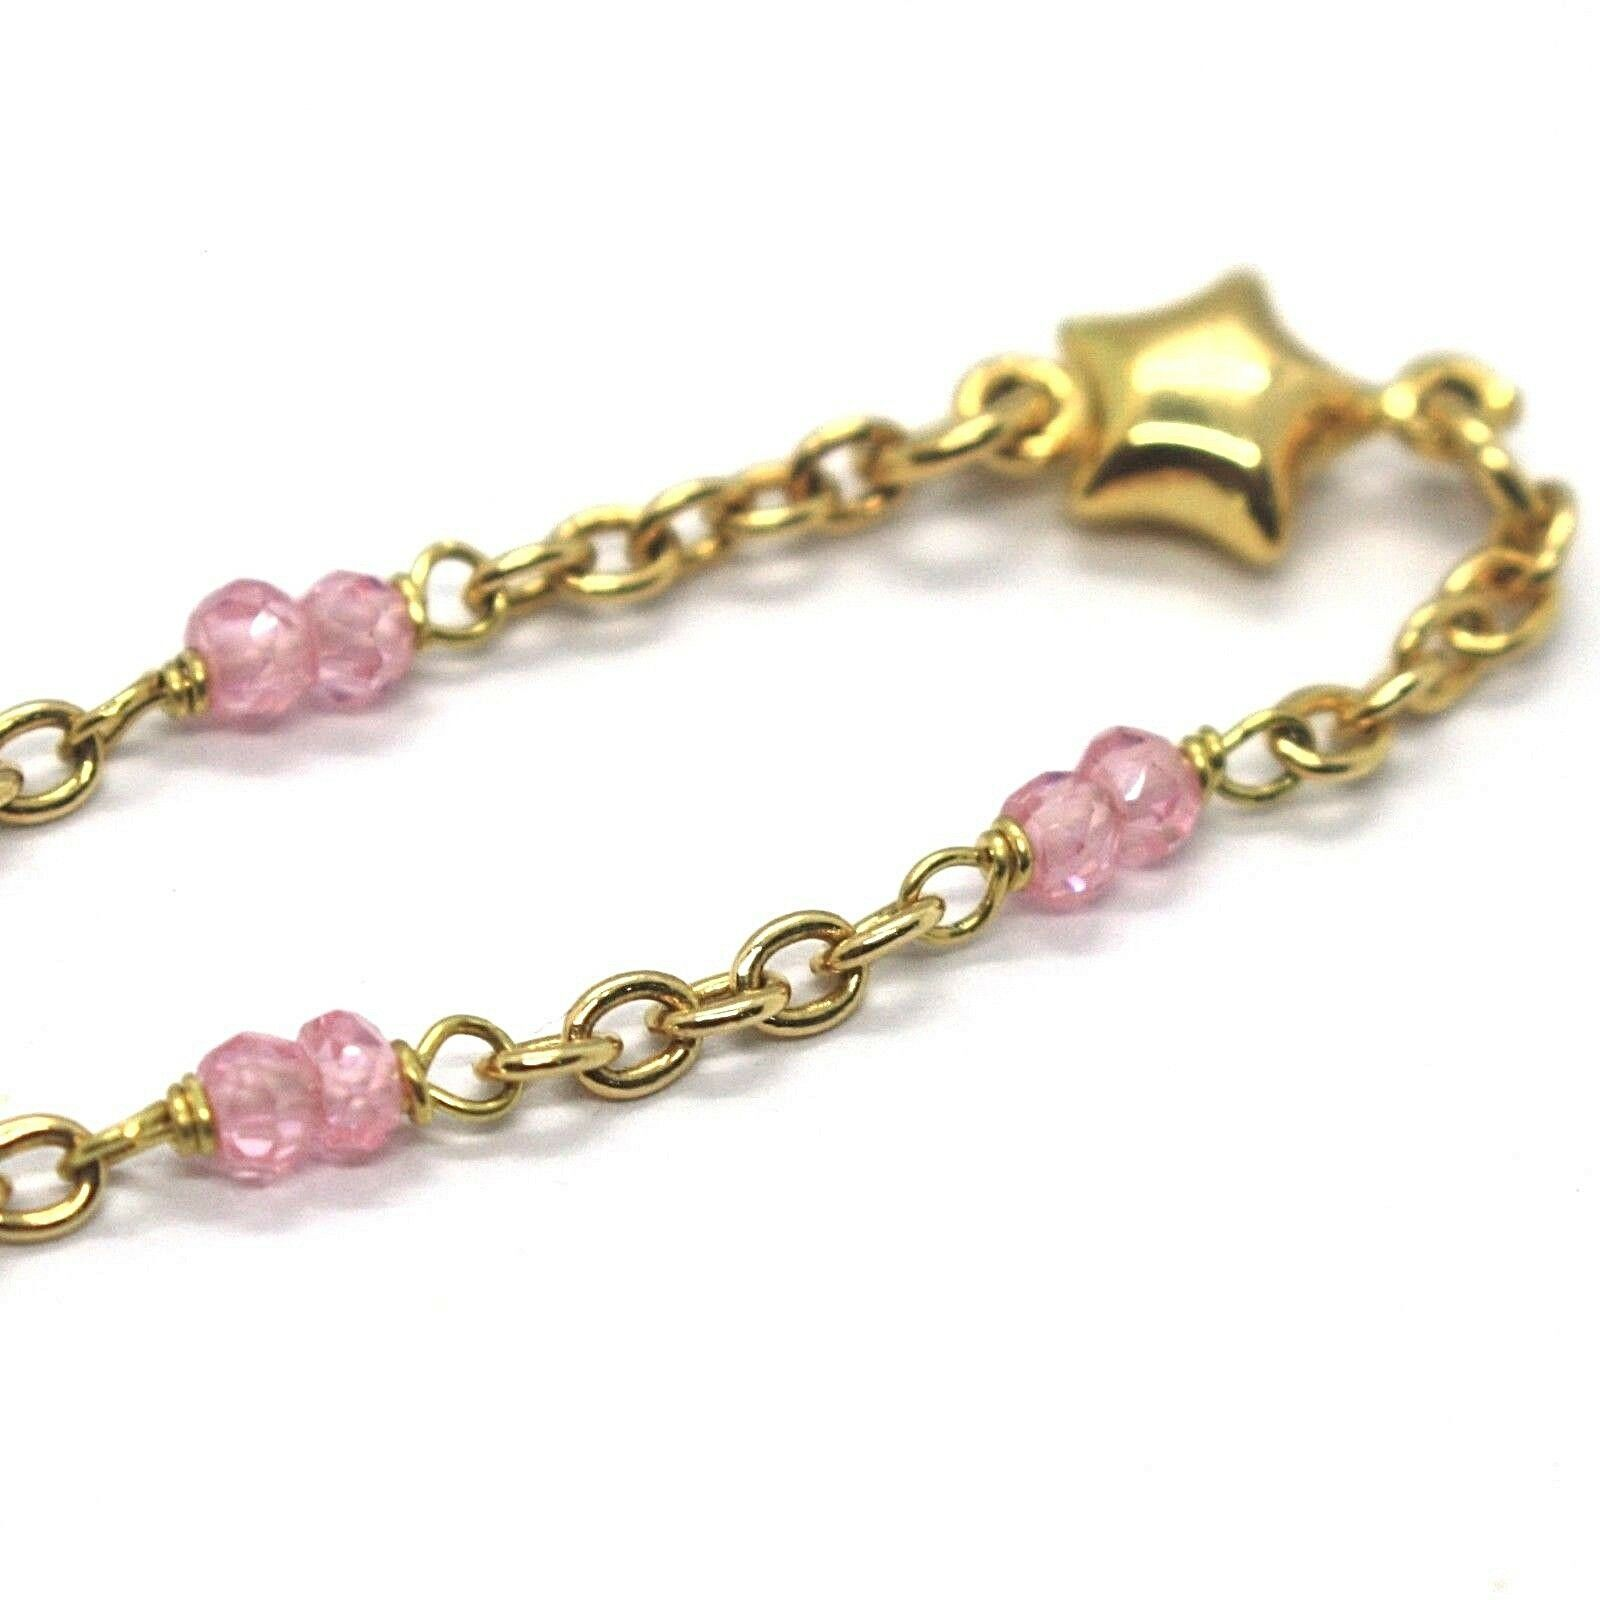 Bracelet Yellow Gold 18K 750 with Salomite Pink, Stars, Italy Made